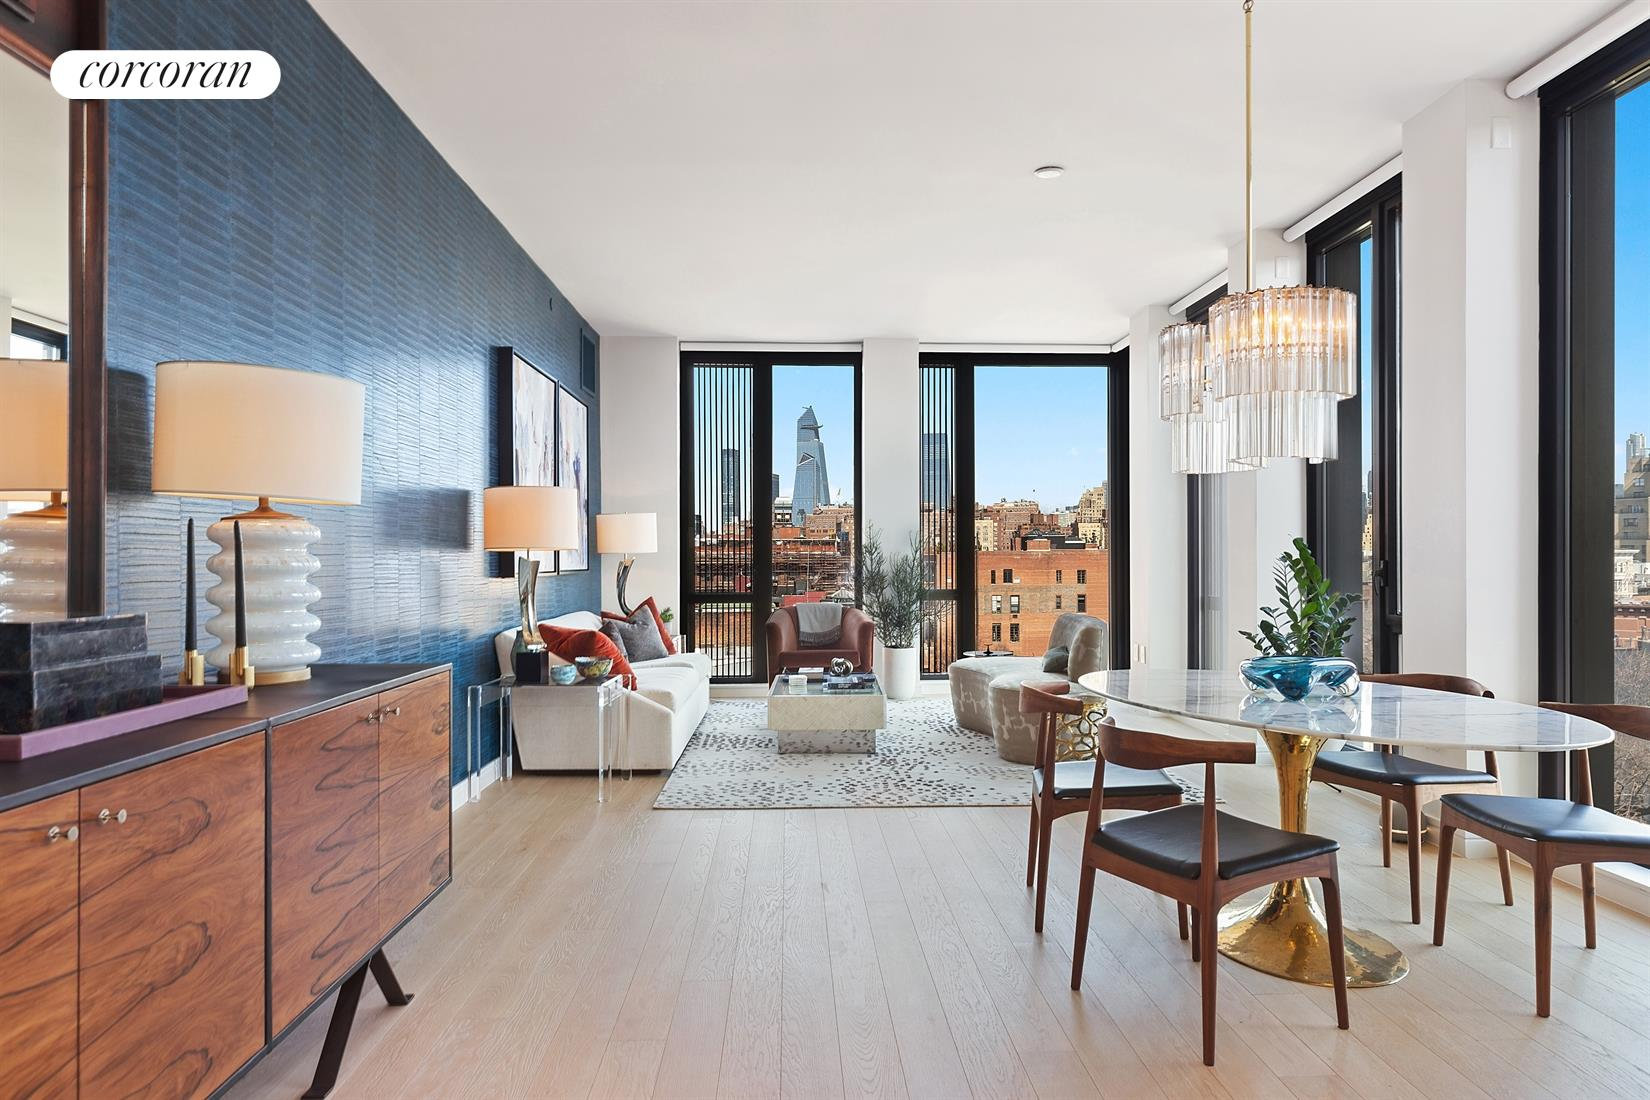 NEW TO THE MARKET! -- RARELY AVAILABLE ARCHITECTURAL MASTERWORK: TRIPLE MINT, TRIPLE CORNER, 3-BR/3.5-BATH IN THE HEART OF THE WEST VILLAGE -- WITH PANORAMIC VIEWS!Welcome to Apartment 9B at 100 Barrow Street. The moment you enter through the gracious foyer of this sprawling, over 2300 square foot, triple-corner apartment, you are immediately struck by the spectacular views of New York City. This stunning, light-flooded home features floor-to-ceiling windows  dazzling exposures north to the Empire State Building and beyond, and east for beautiful sunrises. 9B boasts 3 full bedrooms, 3.5 bathrooms with a modern aesthetic, wonderful high ceilings, wide-plank oak floors and so much more  all of which complement the exacting attention to craft and fine-grained detail throughout.Dine in the magnificent Chefs kitchen that overlooks the historic Barrow Gardens and showcases spectacular city views both north and east -- perfect for morning coffee and watching the sunrise. Grey oak Poliform cabinets, custom hardware and fixtures in oil-rubbed satin bronze crafted by Watermark Designs, harmonize with Carrara marble countertops and backsplash, Gaggenau appliances, a wine fridge and even a garbage disposal. The setting is warm and cozy for relaxed entertaining.The gracious corner master bedroom suite with a separate foyer for additional privacy, offers its own amazing views uptown and a gorgeous, windowed en-suite bath. An oasis of cool grey and black, the master bath offers ample opportunity to luxuriate, from a relaxing, marble soaking tub to a soothing, glass-enclosed shower room. The bathroom's subtle palette includes beautifully veined grey marble walls, floors and tub surrounds of rich black marble, Carrara marble counters, and exactingly detailed oil-rubbed satin bronze door frames and plumbing fixtures. The bedroom has a custom built-out, walk-in closet. Indeed, when it comes to closet space, this home is every New Yorkers dream.Residence 9B has a luxurious, generously-proportioned second bedroom, plus a third bedroom with city views that can also serve as a home office or den. There is a lovely, well-positioned powder room and a laundry room with a large Whirlpool washer/dryer set, automated window treatments, Crestron control panel system and a multi-zone heating and cooling system with climate control. All bathrooms have radiant heated floors. But the true centerpiece of this extraordinary home is an impressive 28-foot grand hallway with ample space to house anyone's art collection as it seamlessly divides the public rooms from the sleeping quarters.100 Barrow is a full-service, boutique condop and a graceful new addition to its West Village surroundings. Situated on a prestigious, cobblestoned block and built near St. Lukes Church in the Fields (one of the city's historic churches), the residences occupy a magical, idyllic spot within Manhattans oldest landmark district. The spacious, carefully-crafted interiors, designed by Bernheimer Architecture, extend throughout the building. A dedicated floor brings together the exclusive amenities that enrich the experience of living at 100 Barrow. The heart of the elegantly-appointed amenity level is a wine cellar and tasting room, a dramatic vaulted space lined in white oak and wrapped in walls of bold black granite. Inside are dedicated cellar racks for your personal wine collection and a black marble table to host private tastings. Adjacent is a gracious dining area, a catering kitchen, and a residents' lounge that offer an inviting setting for private gatherings. Services and amenities also include a twenty-four-hour concierge, fitness studio, steam room and sauna, kids playroom, bike storage and pet spa. 9B also transfers with an extra-large storage unit.There is no board interview, which makes for a quicker purchase. Additionally, there is a 421-A tax abatement in place. Conveniently located to transportation, the West Side Highway, wonderful neighborhood restaurants and the Brooklyn Fare supermarket. The building is pet friendly.  This is a property of distinction that must be seen to be fully appreciated.